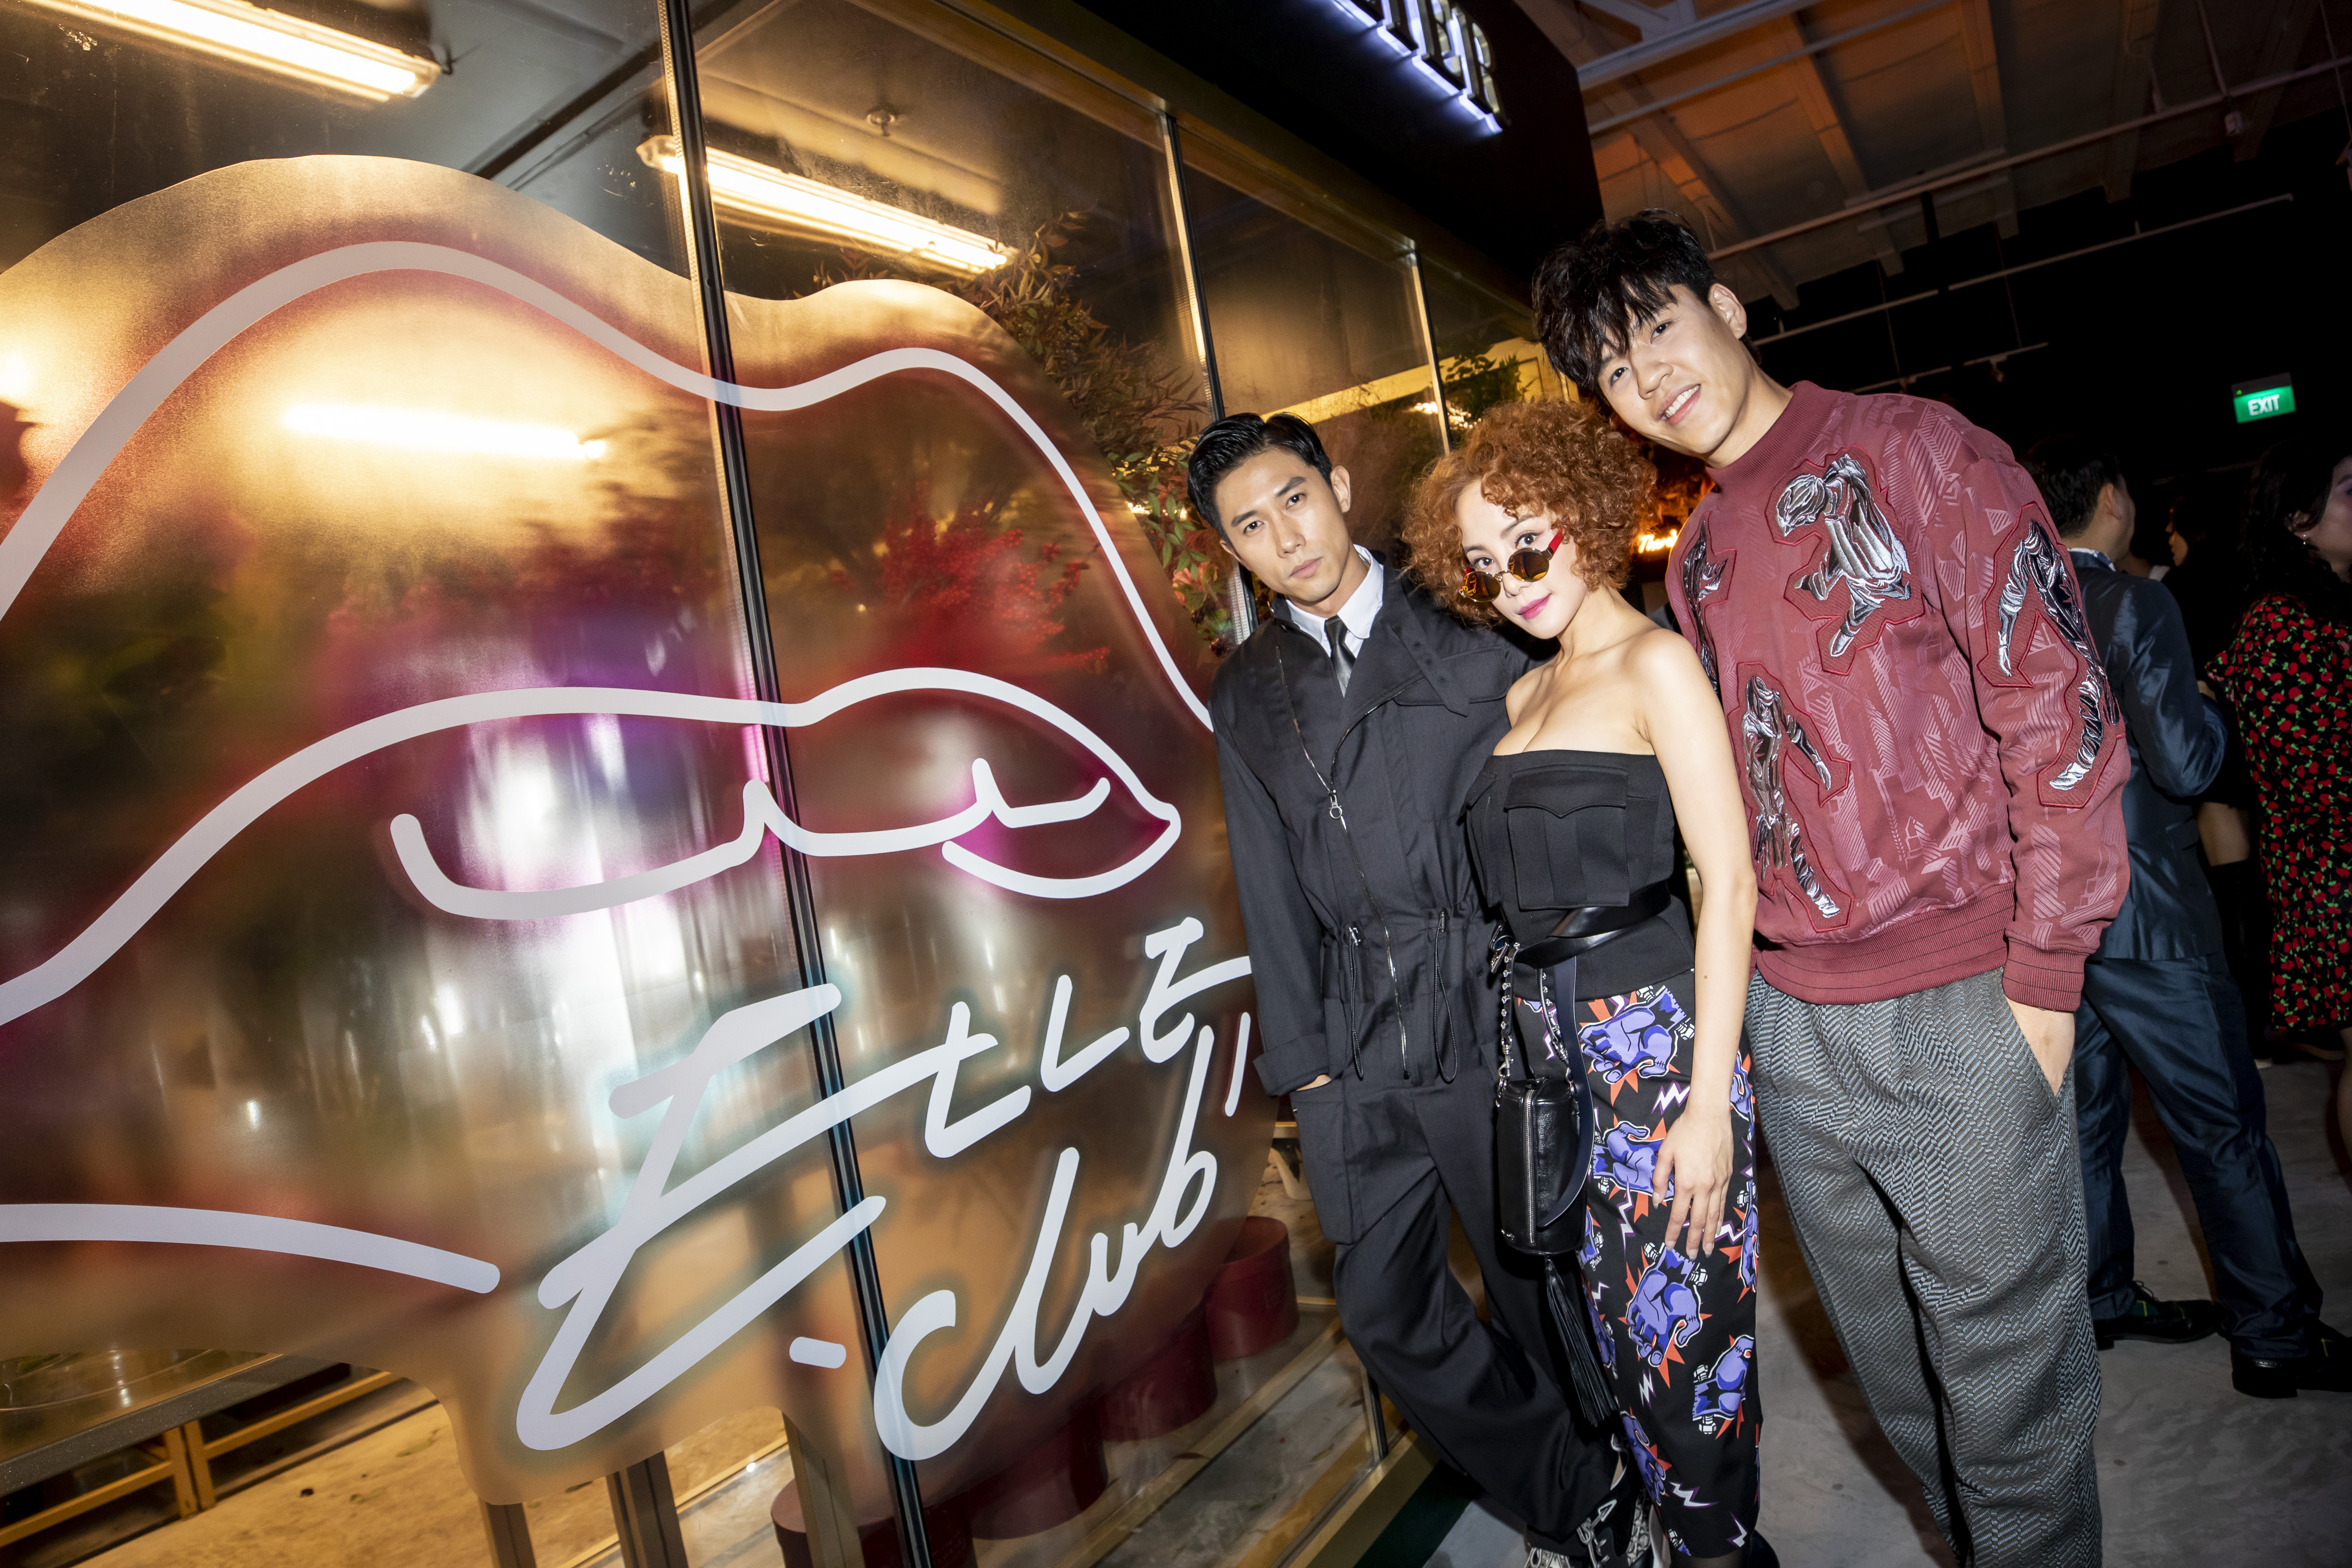 Desmond Tan, Fiona Xie and Chase Tan